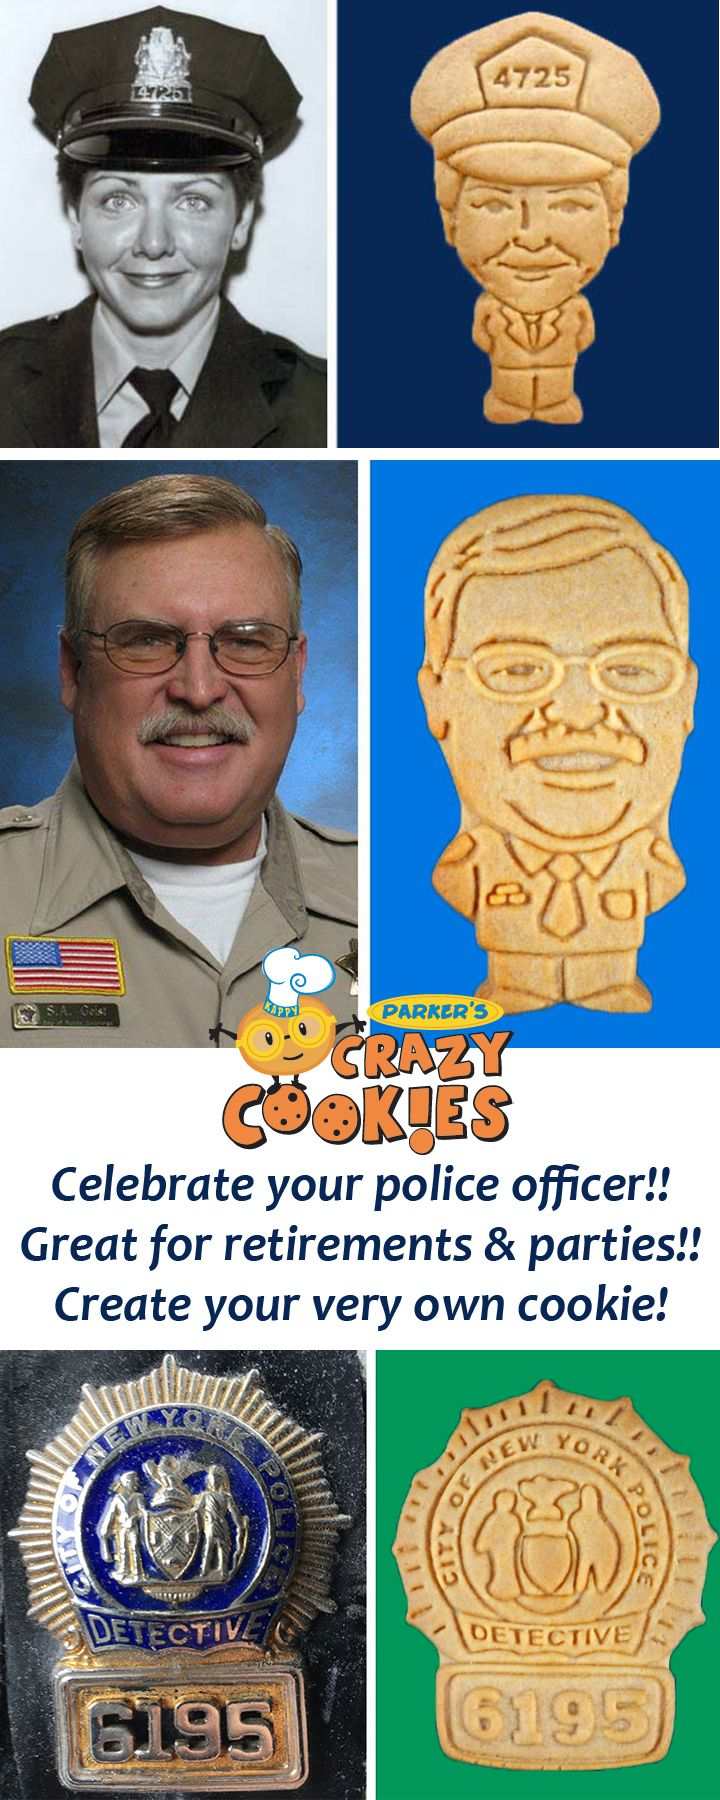 Celebrate your officer in style with a custom cookie of their badge or in their likeness! Discover the magic at www.parkerscrazycookies.com. As seen on the food network and today show!